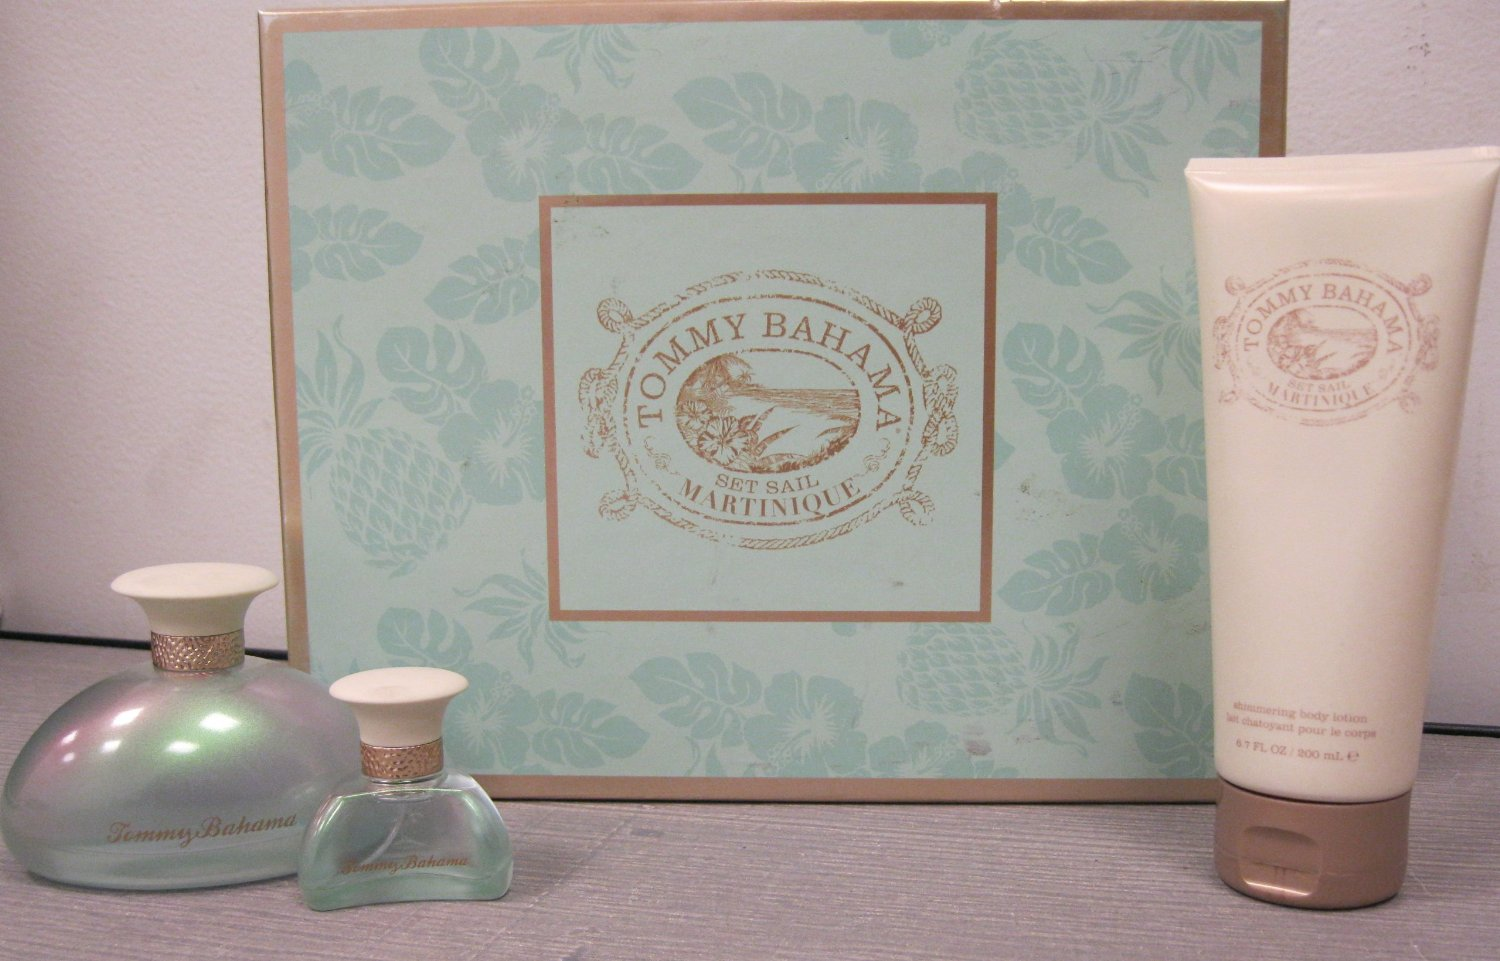 Tommy Bahama Set Sail Martinique By Tommy Bahama for Women - 3 Pc Gift Set